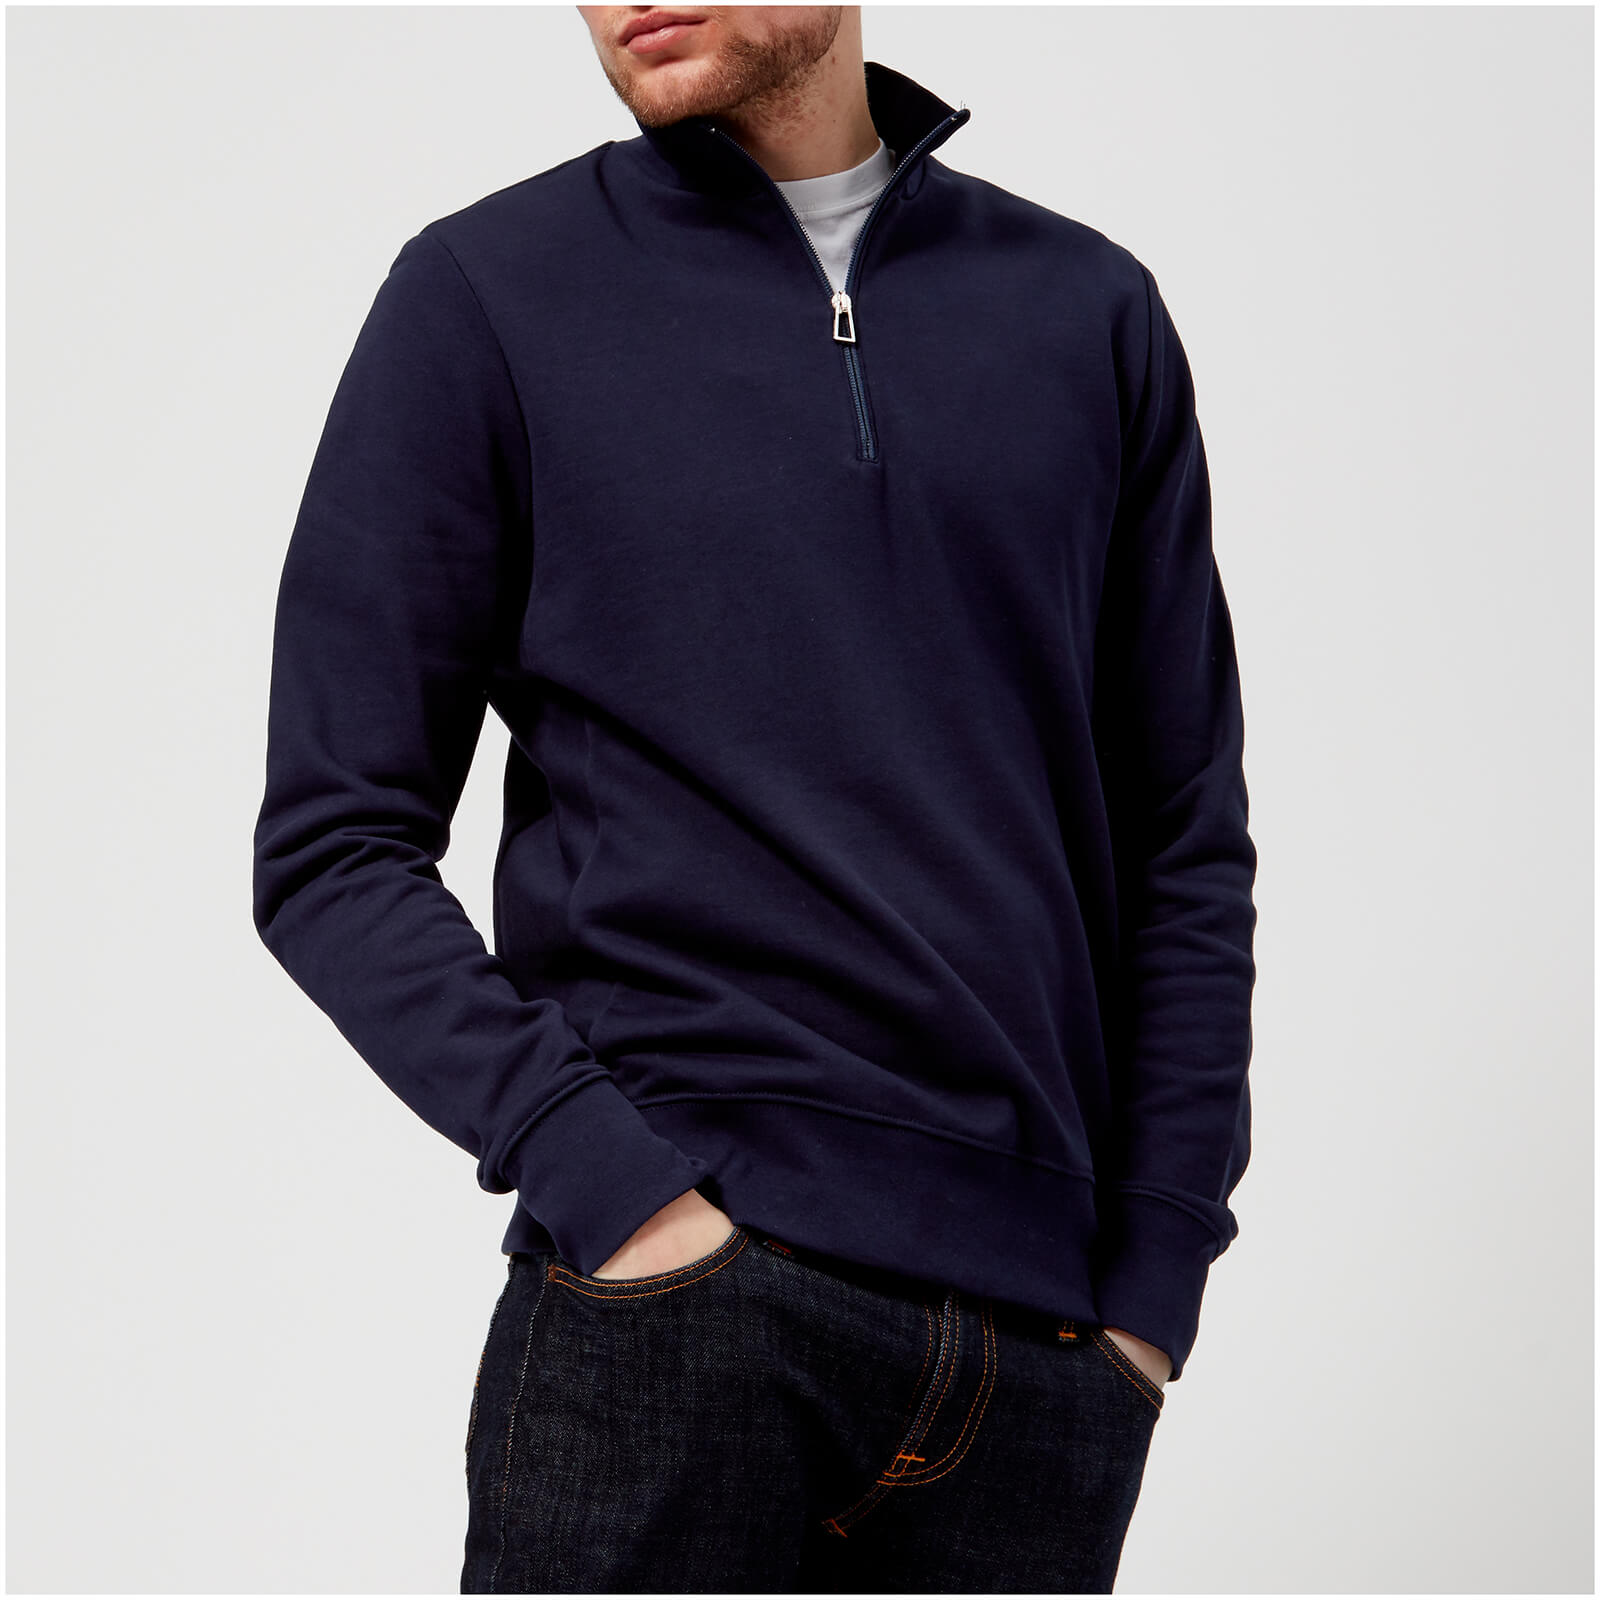 38feeb624d8d92 PS by Paul Smith Men's Regular Fit Half Zip Sweatshirt - Blue - Free UK  Delivery over £50